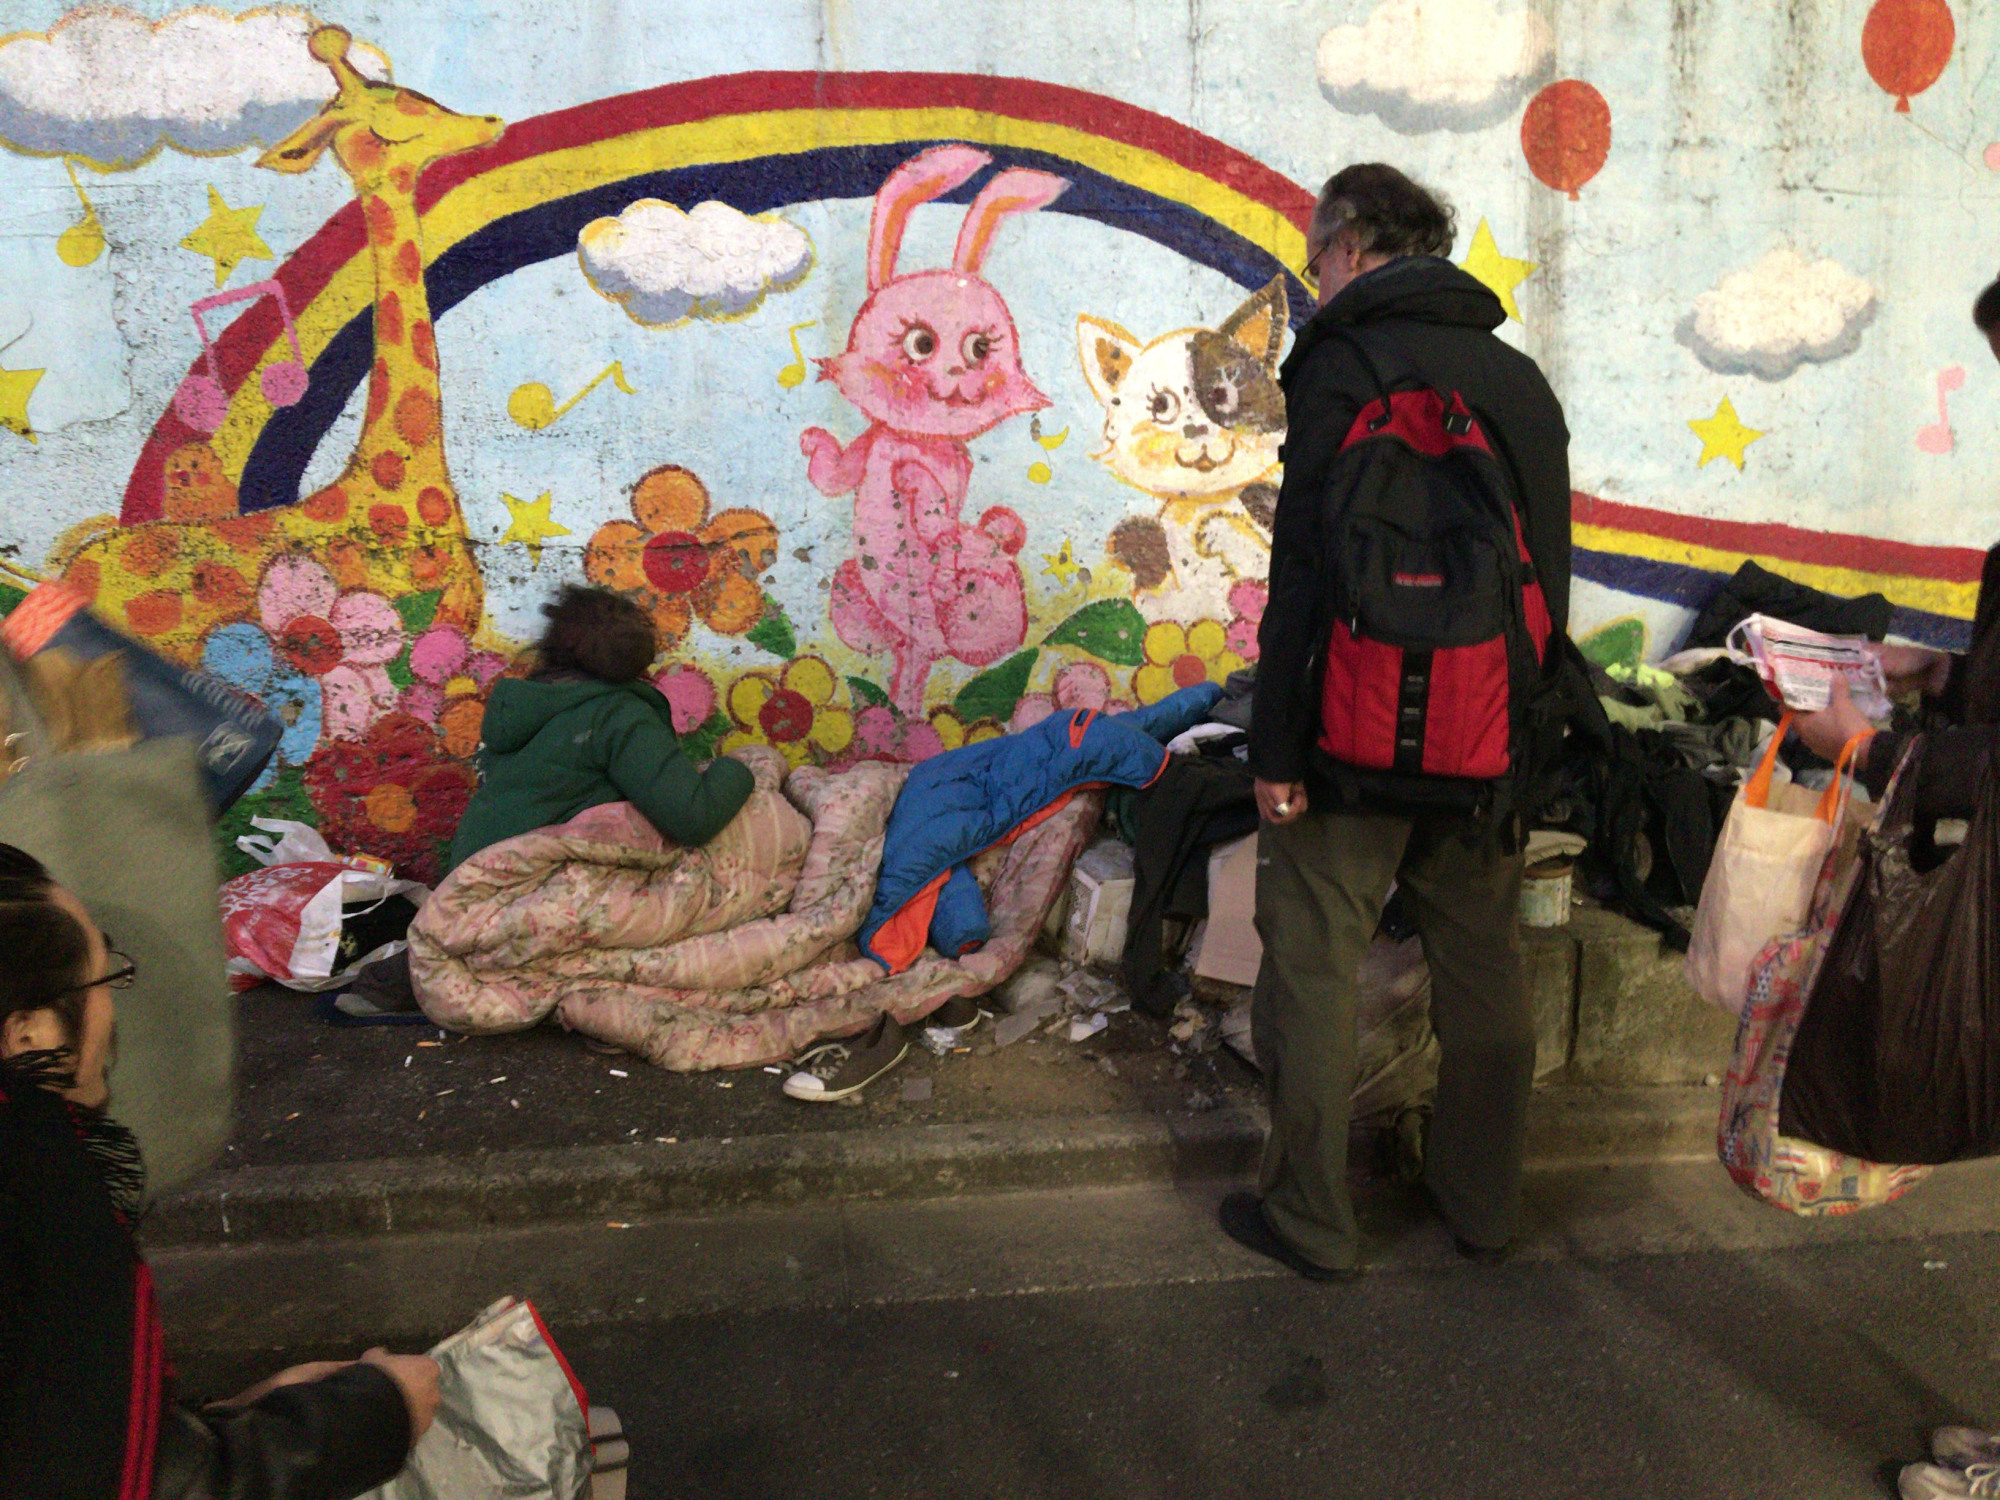 Study in contrasts: A homeless man sleeps next to a mural in Tokyo's Shinjuku district. | SIMON SCOTT